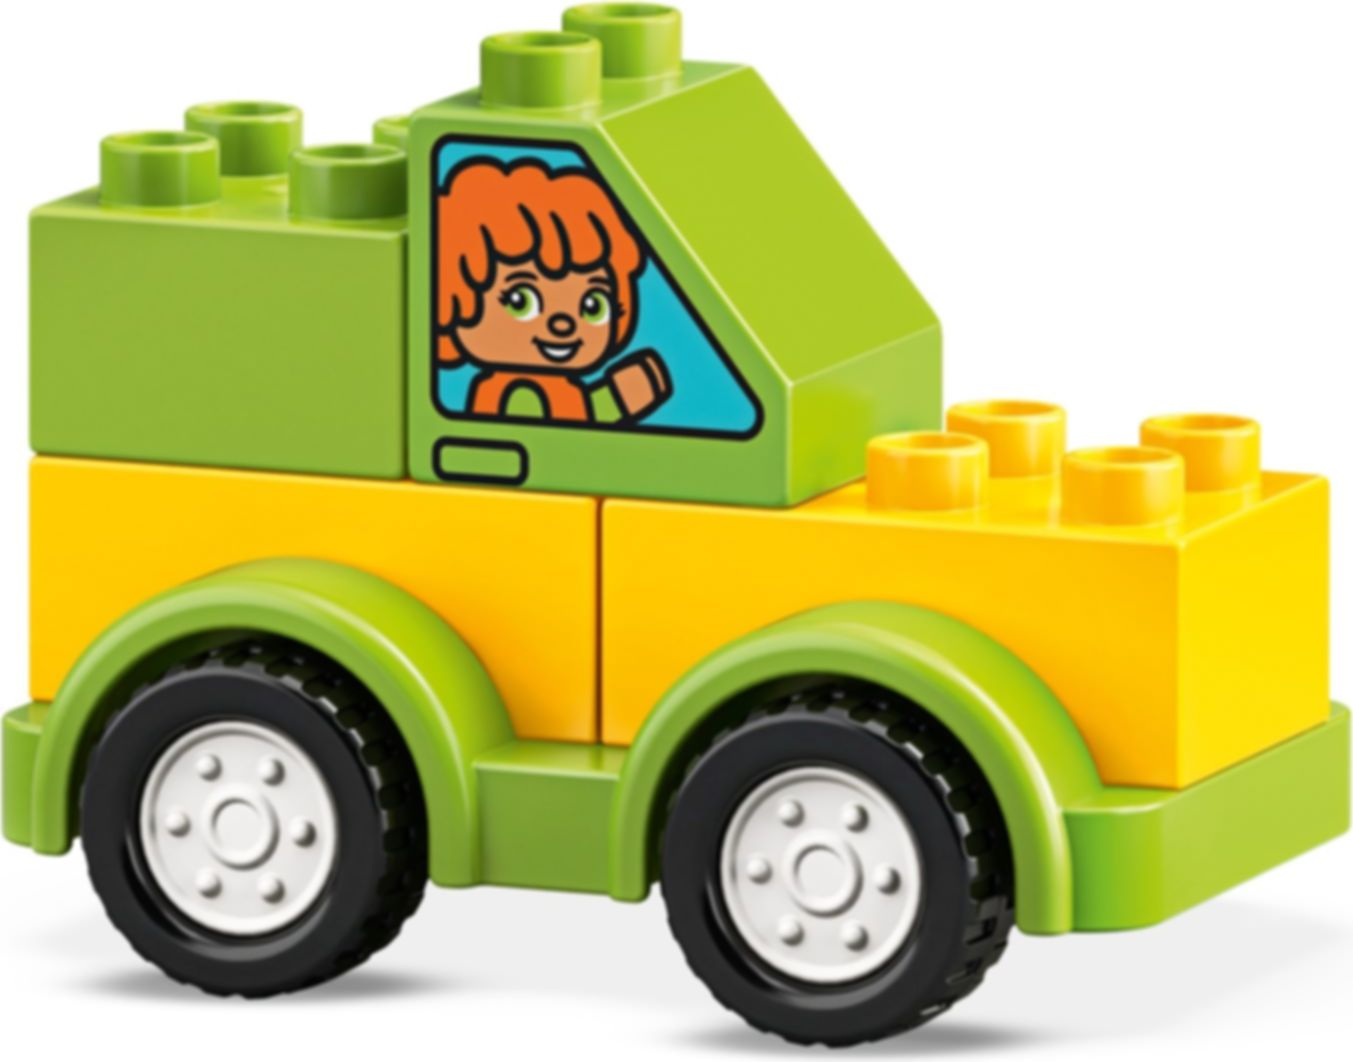 LEGO® DUPLO® My First Car Creations components